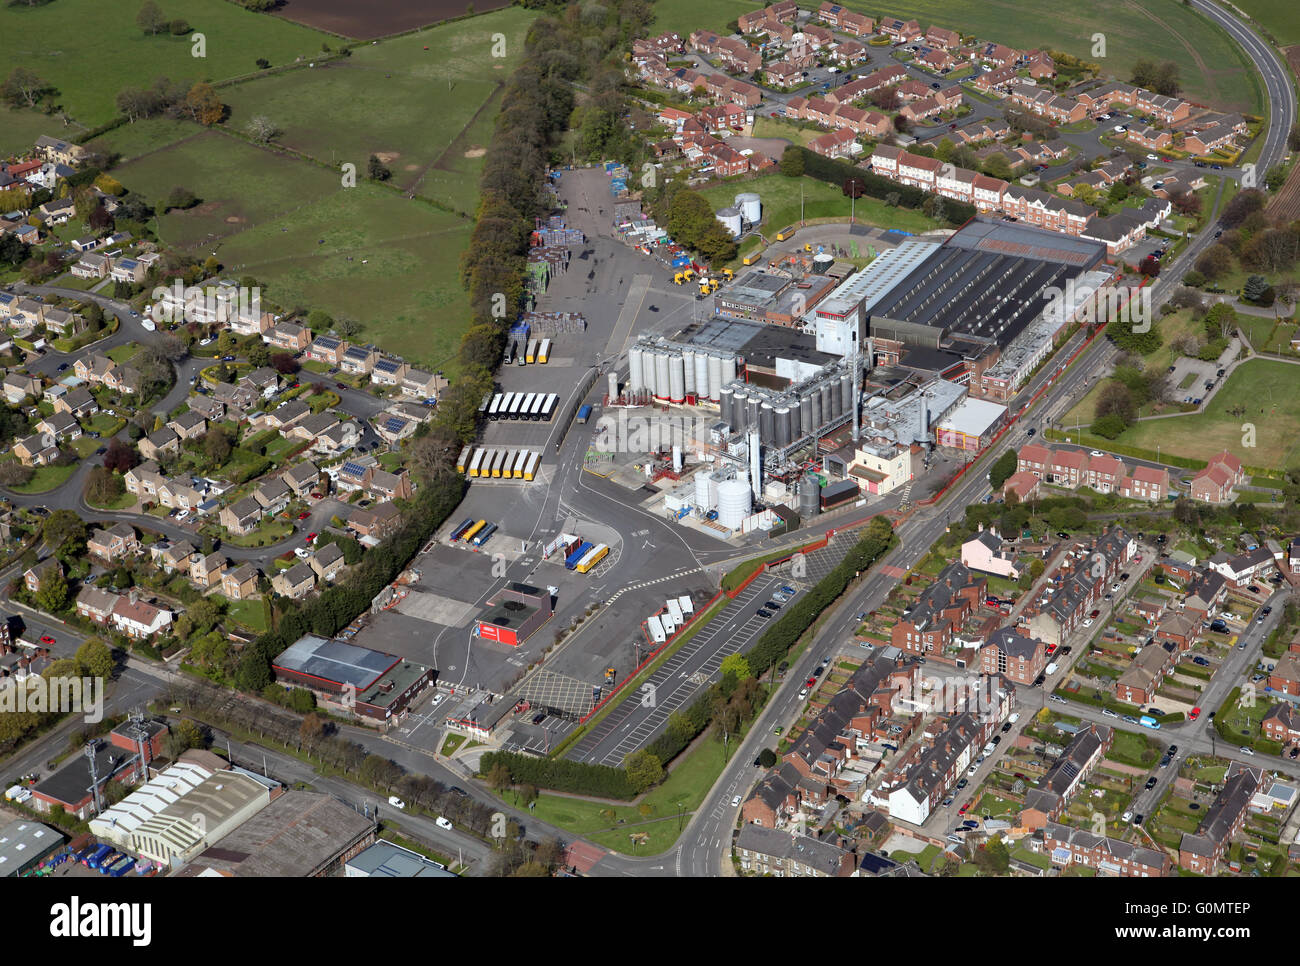 aerial view of Tower Brewery in Tadcaster, Yorkshire, UK - Stock Image